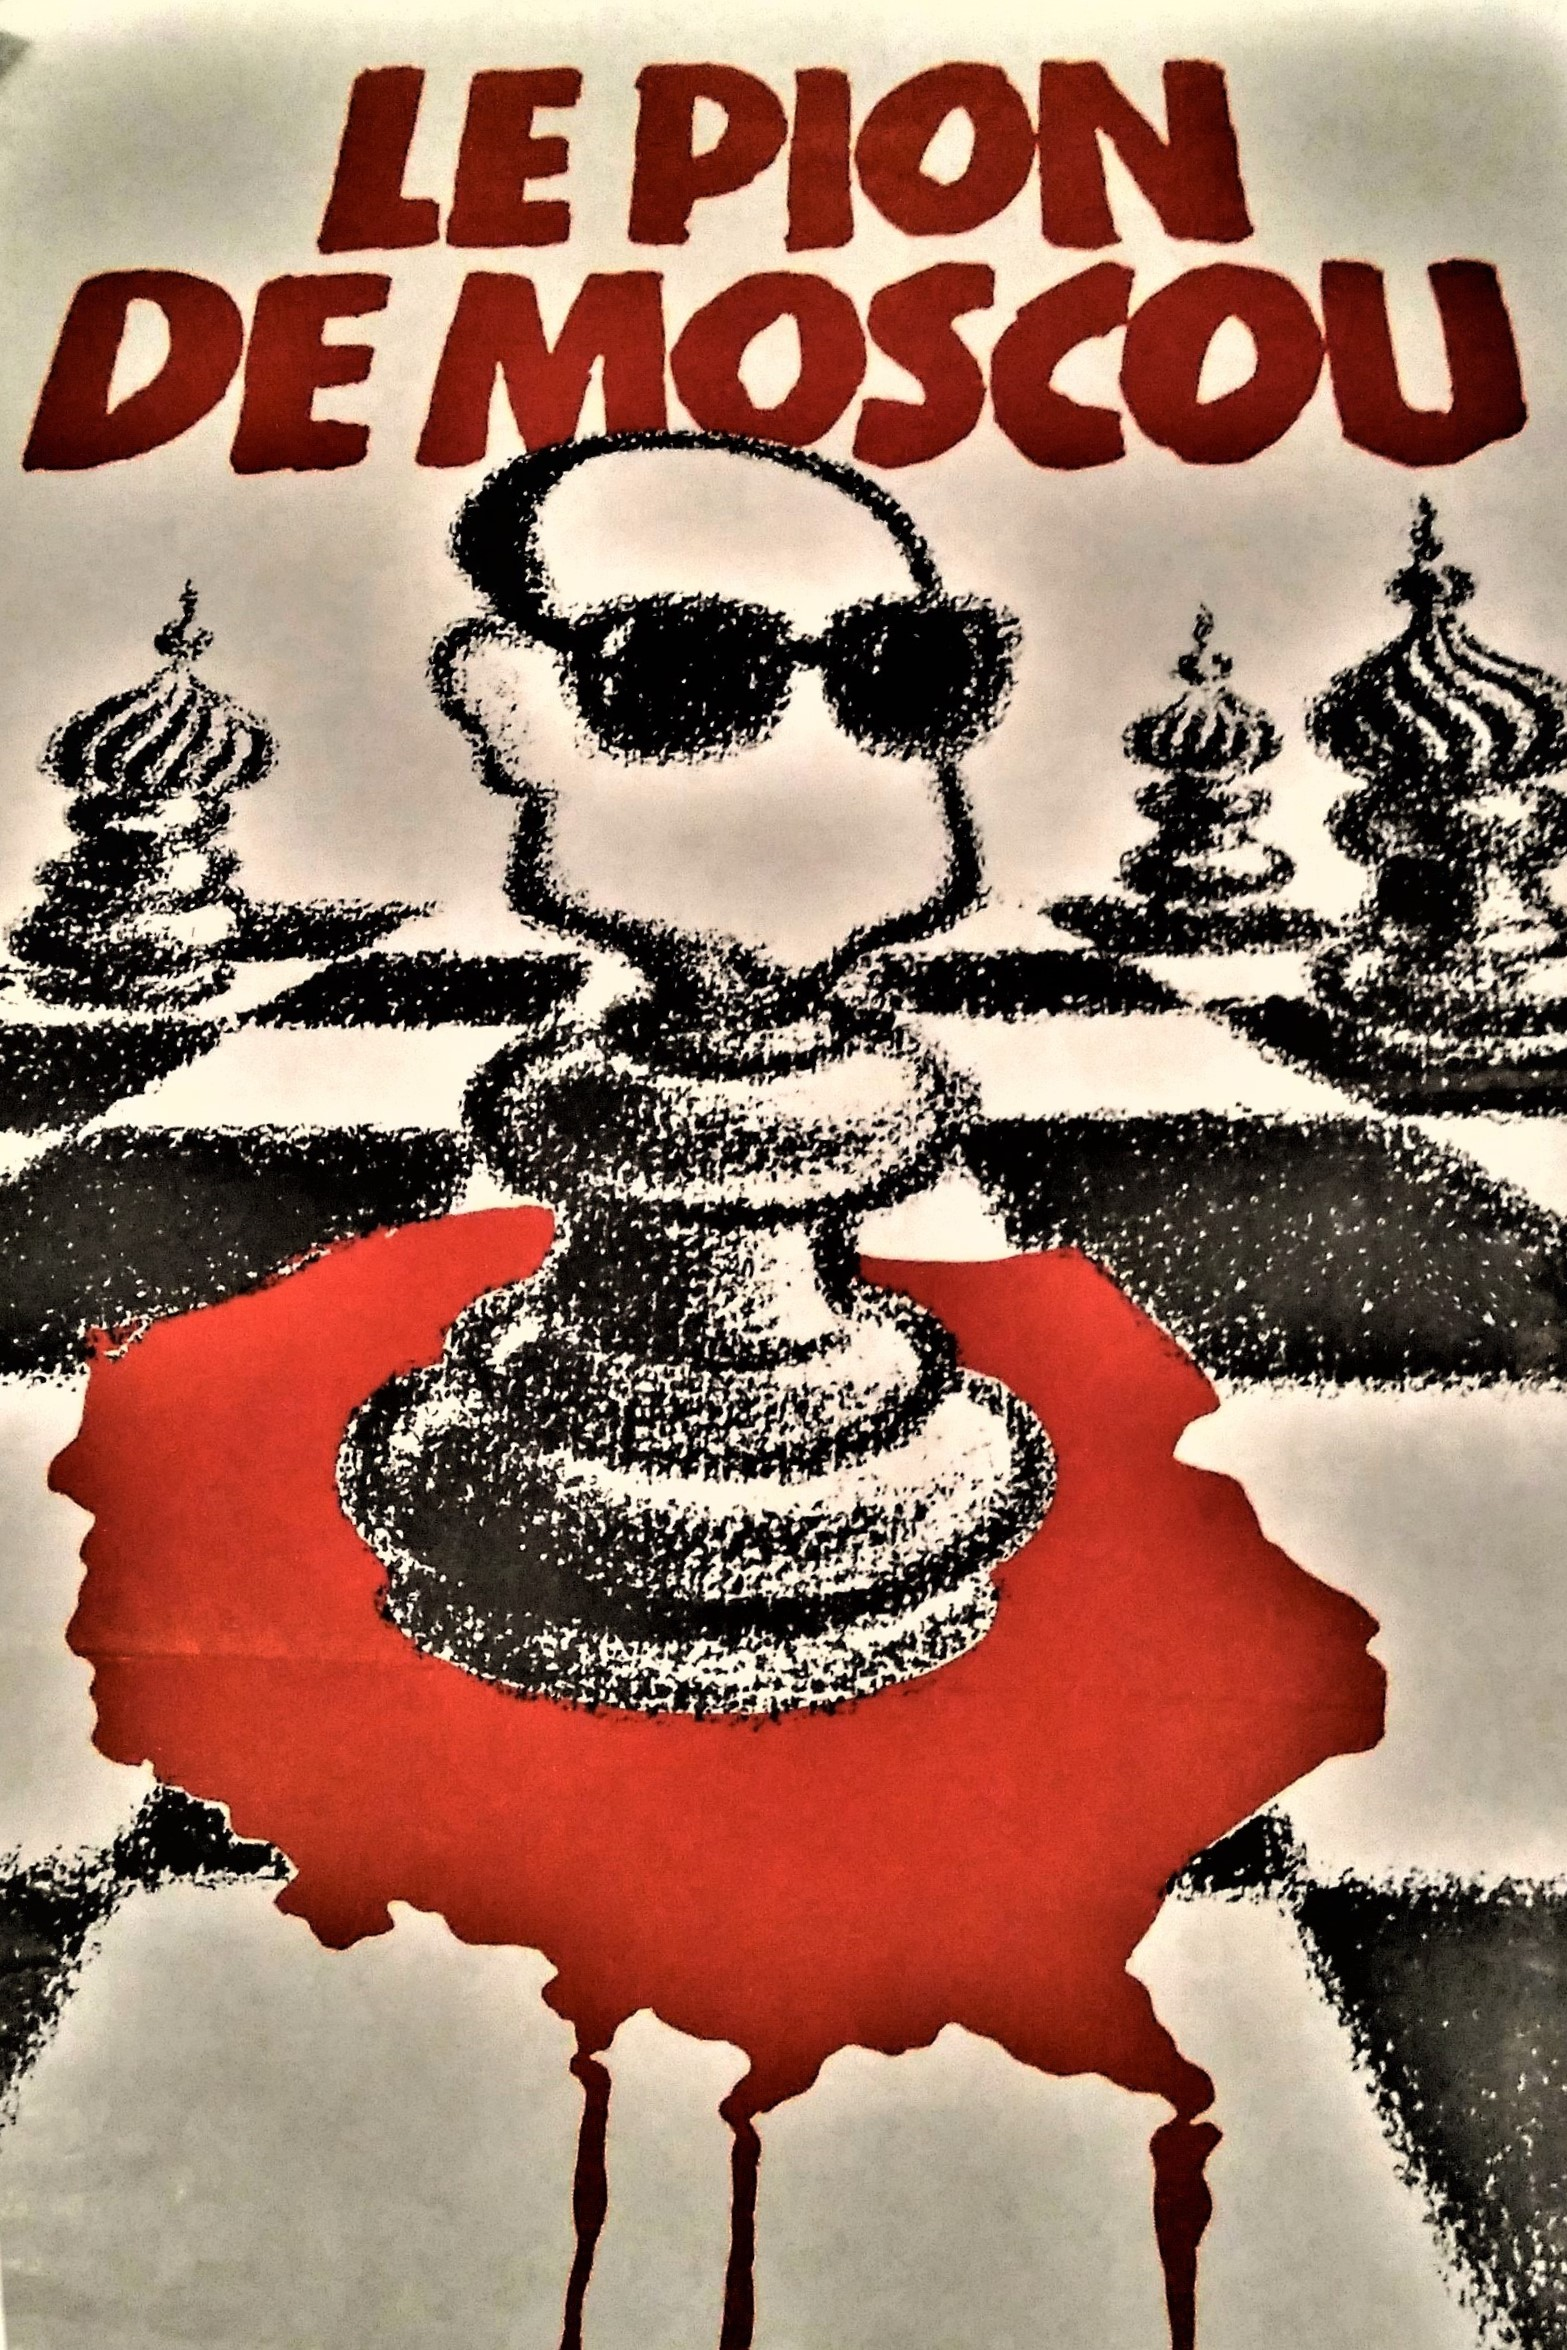 Le Pion De Moscou (A Pawn of Moscow) French poster depicts General Wojciech Jaruzelski, head of the authoritarian communist government of Poland, as a pawn on the chessboard. He is firmly placed on the bleeding map of the country. Jaruzelski whose face lacks a mouth, a feature which implies the absence of any free will, is accompanied by other pawns that resemble Kremlin's domes. In all likelihood, the poster was conceived during the martial law period which lasted from 13 December 1981 to 22 July 1983 and met with vehement protests in France.